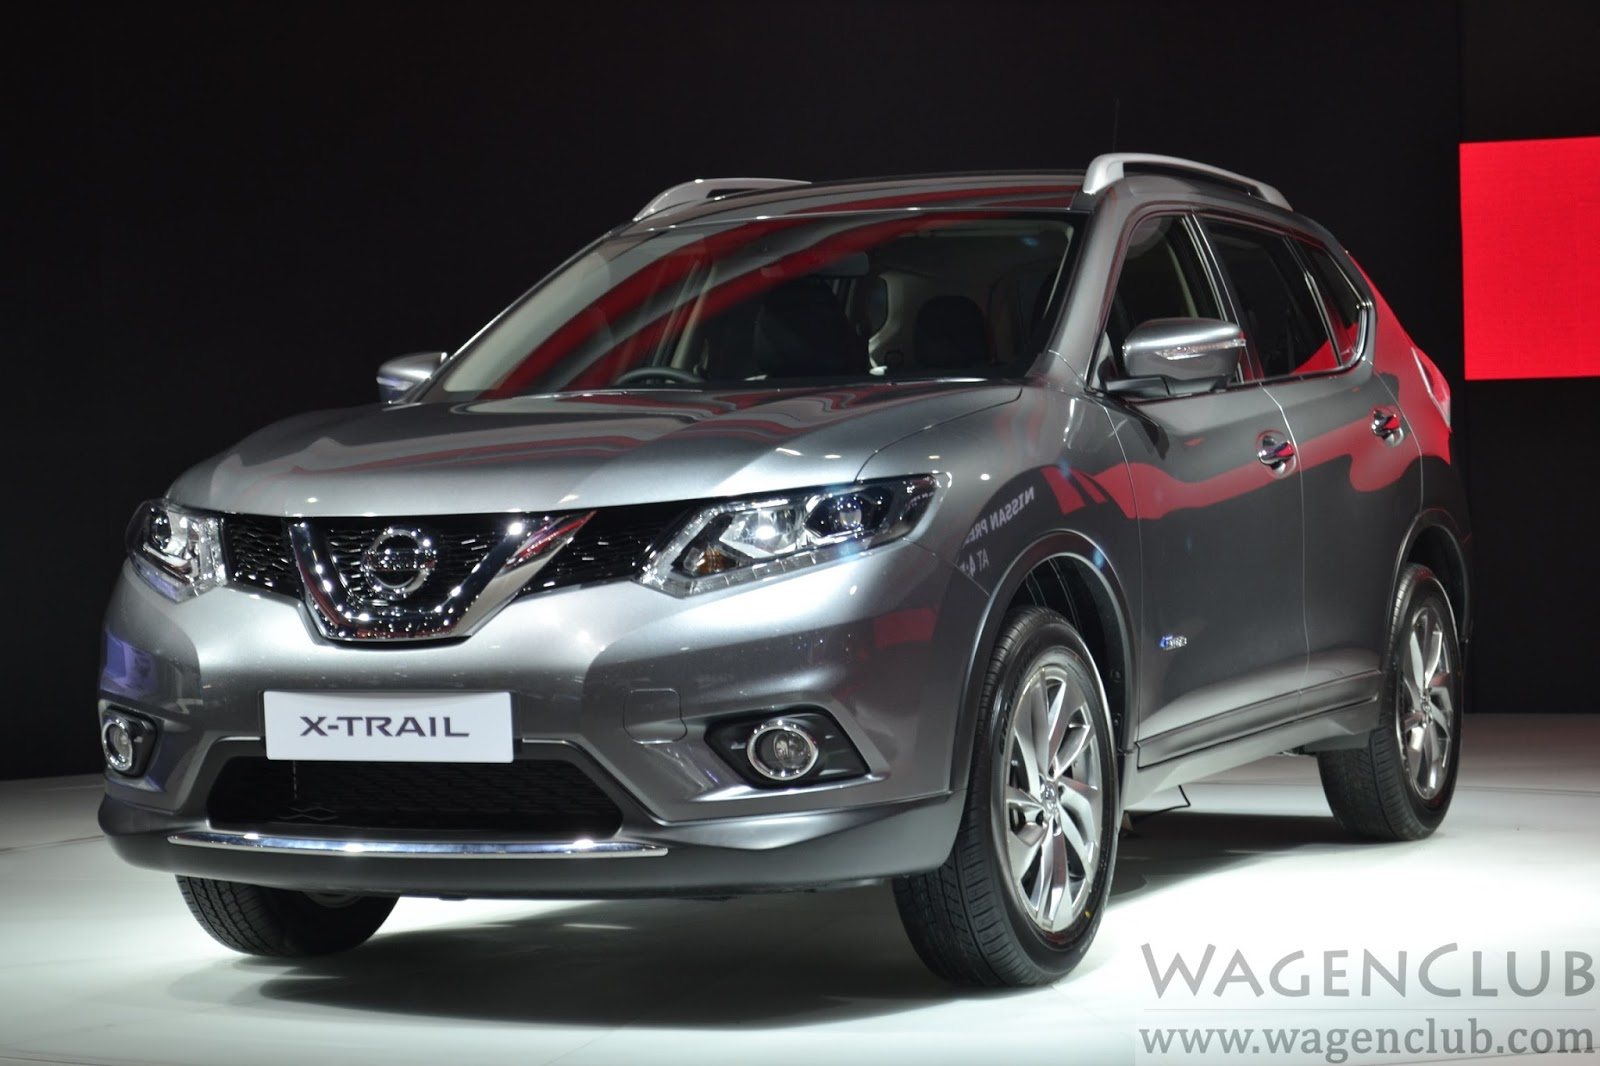 nissan x trail hybrid india debut 2016 auto expo wagenclub blog on cars cvs bikes. Black Bedroom Furniture Sets. Home Design Ideas